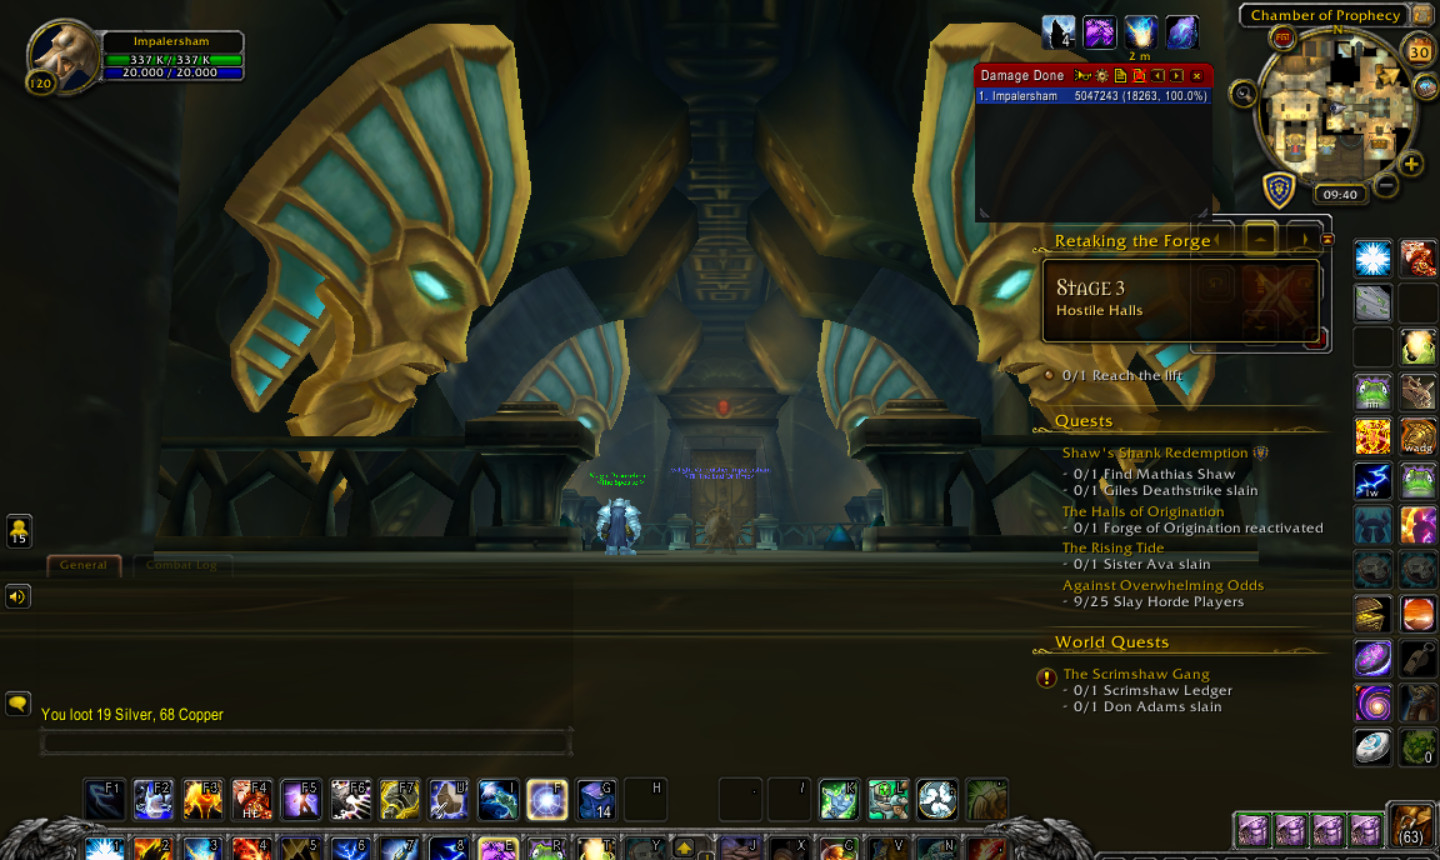 Black Empire Campaign First Quest To The Legendary Cloak Quest Wow Guide And Tips Empire World Of Warcraft Campaign